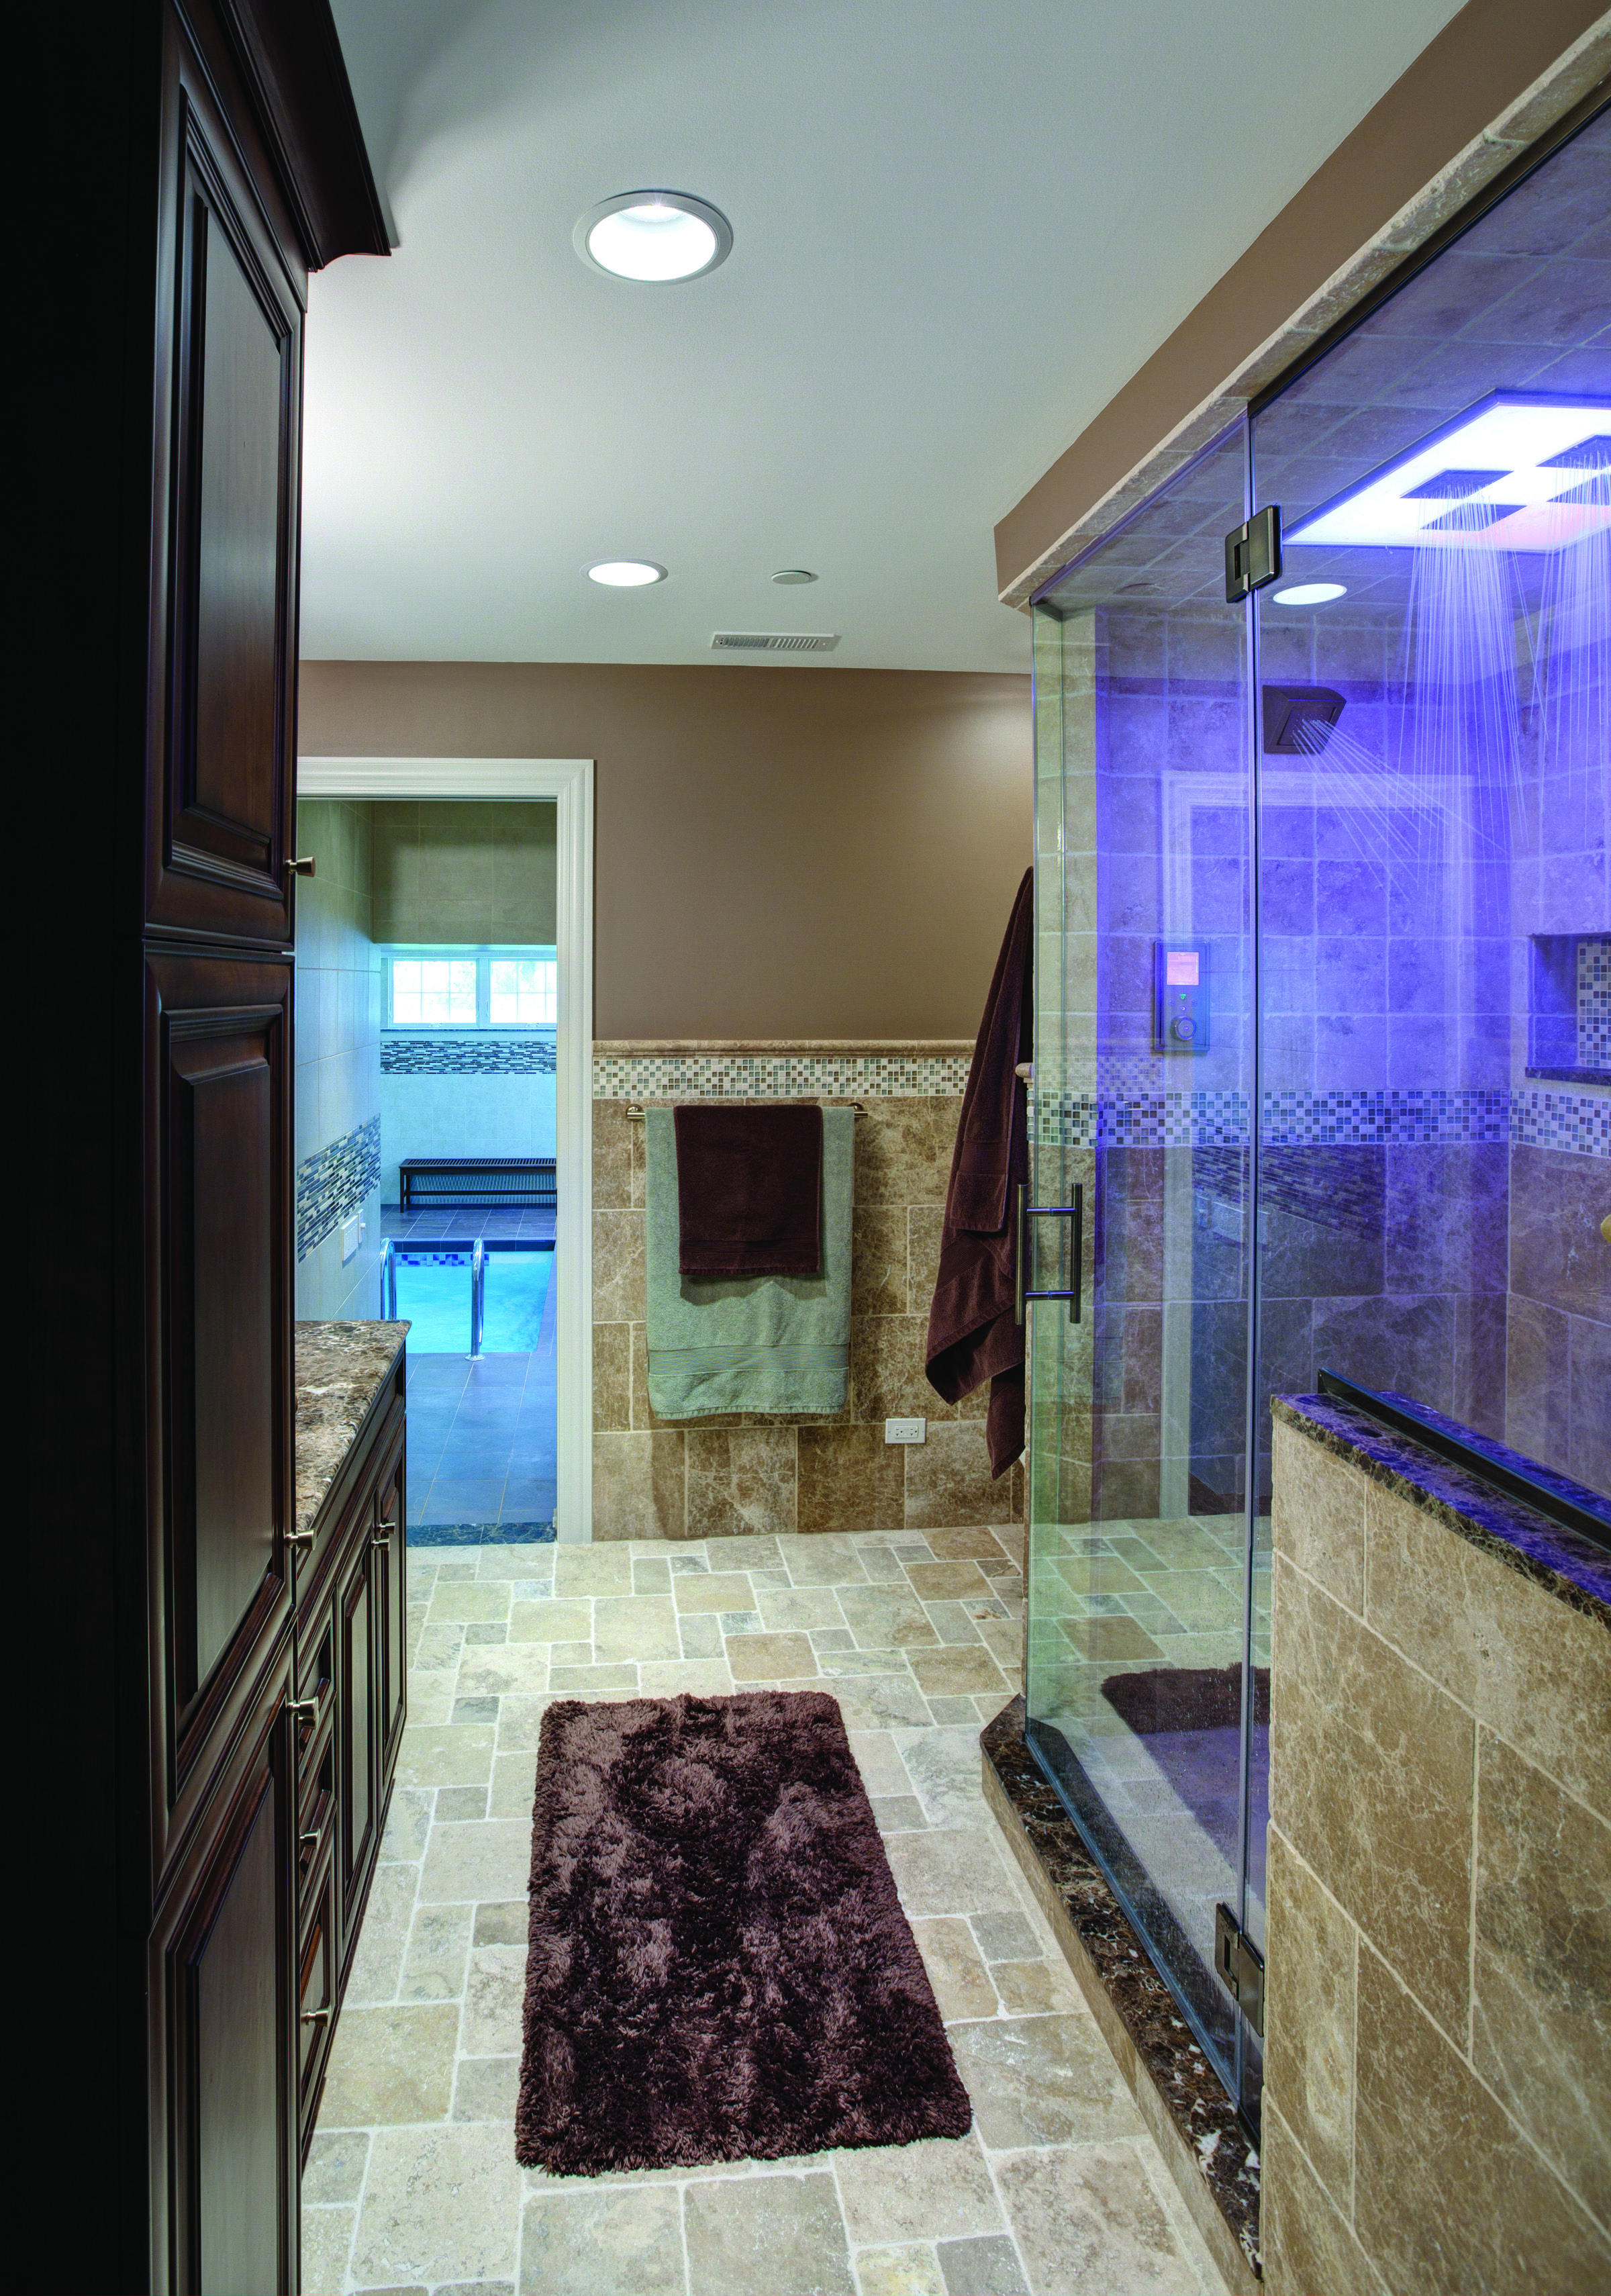 Bathroom   A Rain Head Shower And Water Tile Overhead, Body Sprays On Both  Sides, And Waterproof Sound System Create The Ultimate Shower Experience.